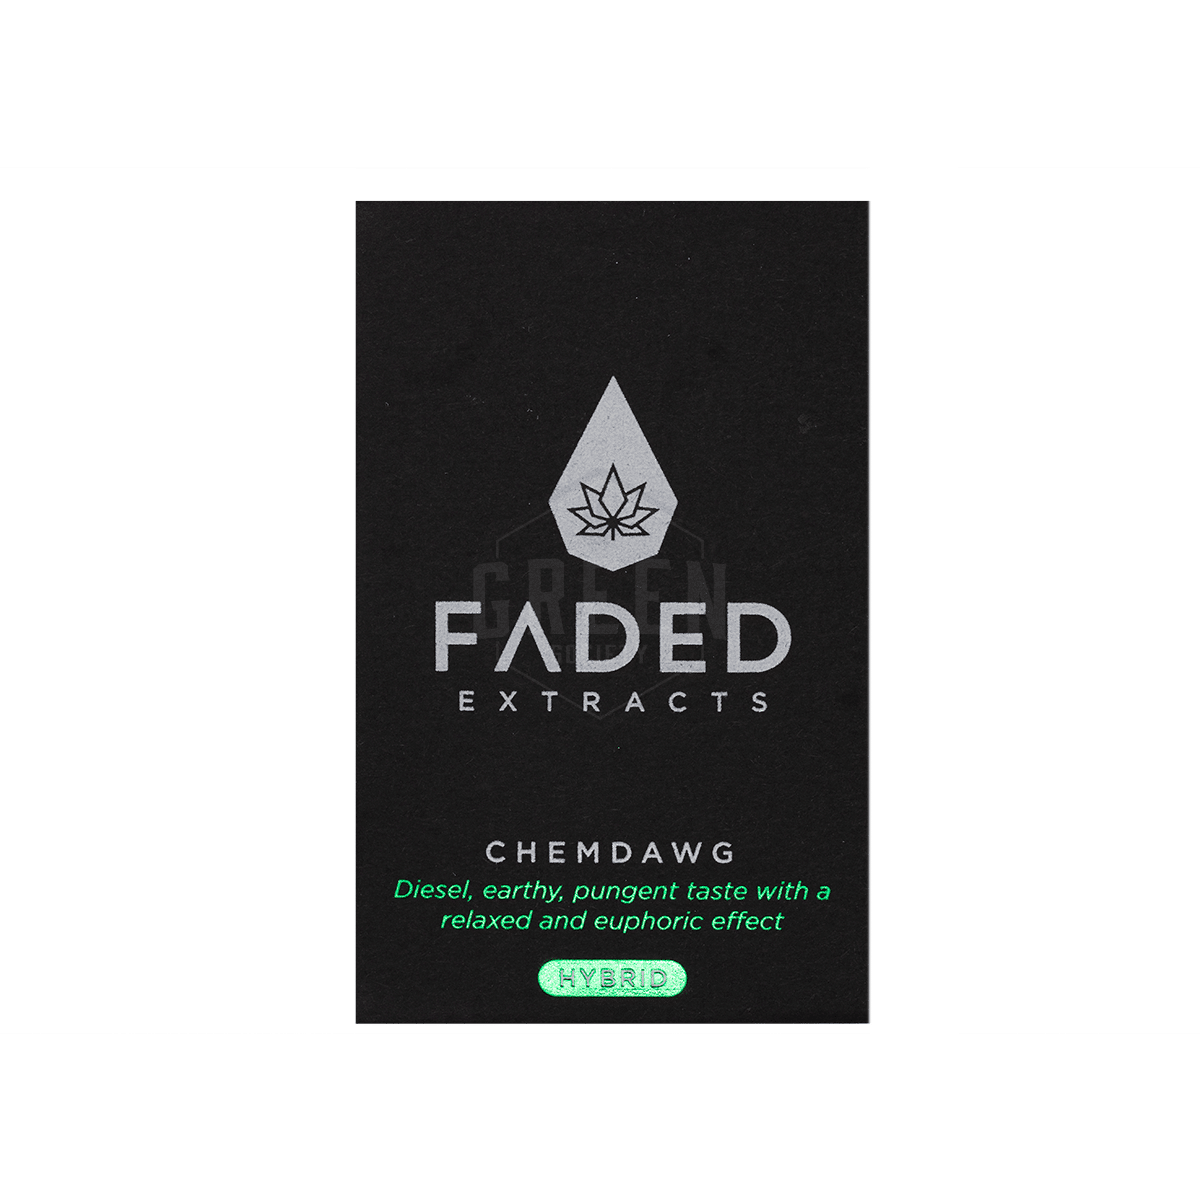 Chemdawg Shatter by Faded Extracts by Green Society - Image © 2018 Green Society. All Rights Reserved.